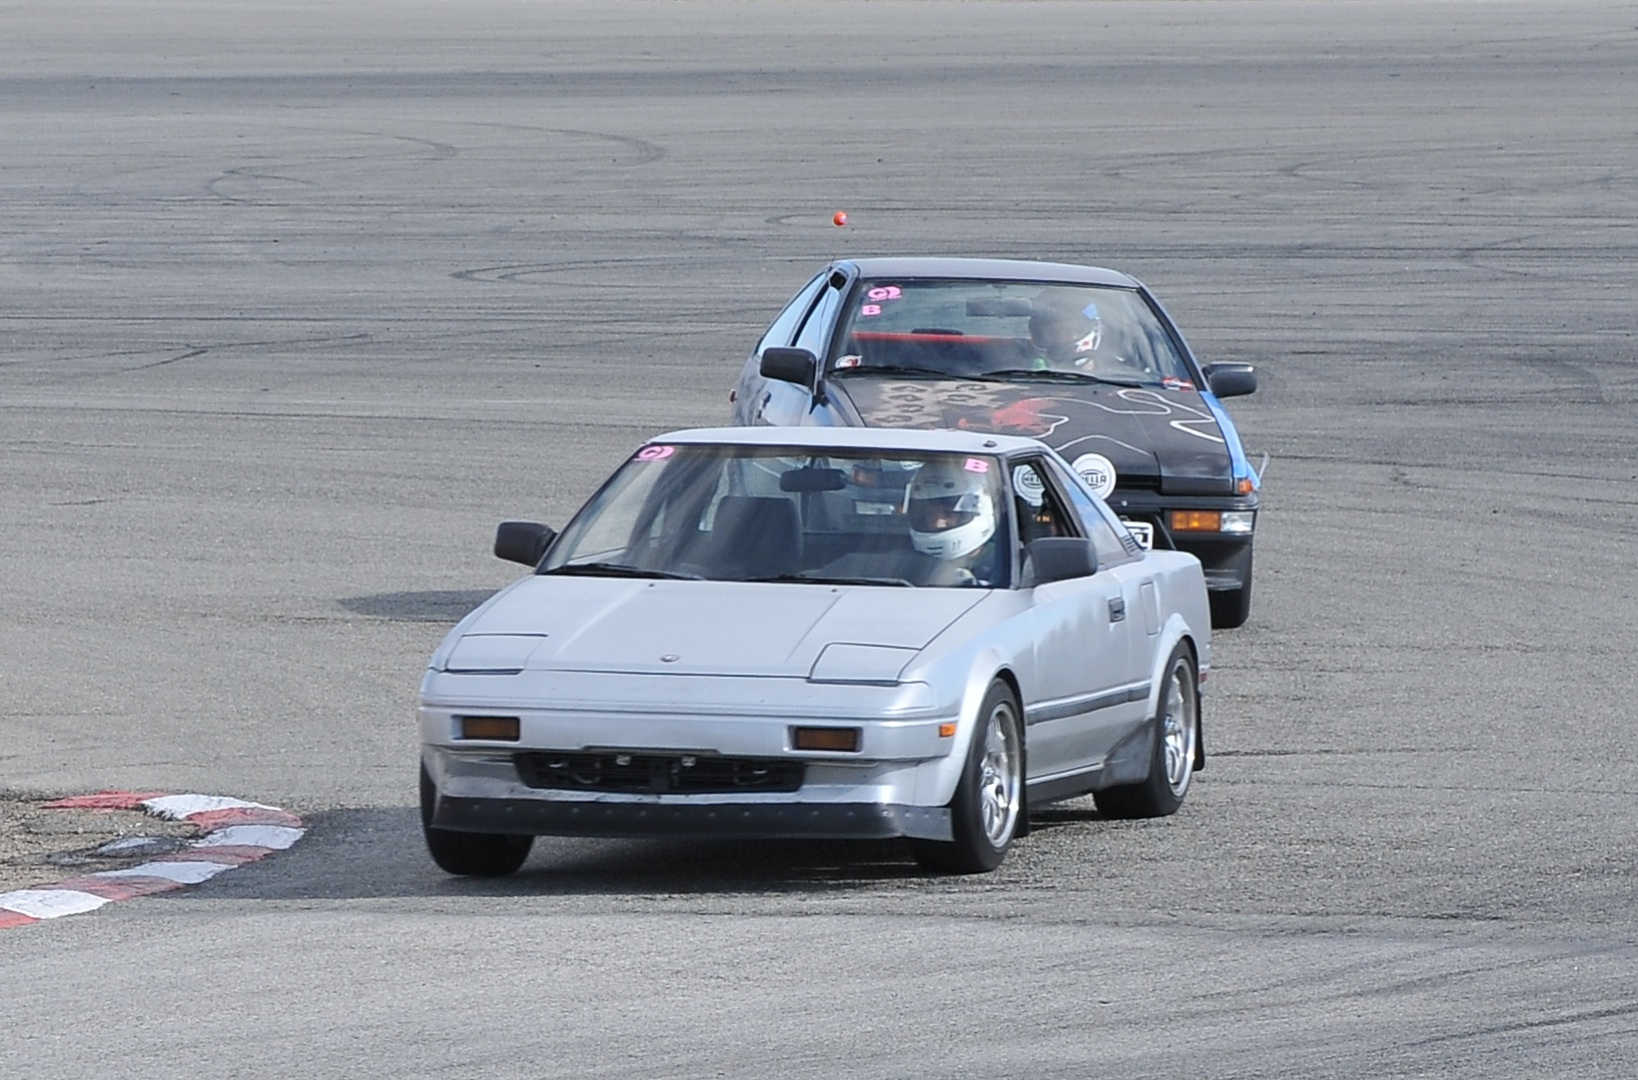 AW11, Mr2, silver, chased